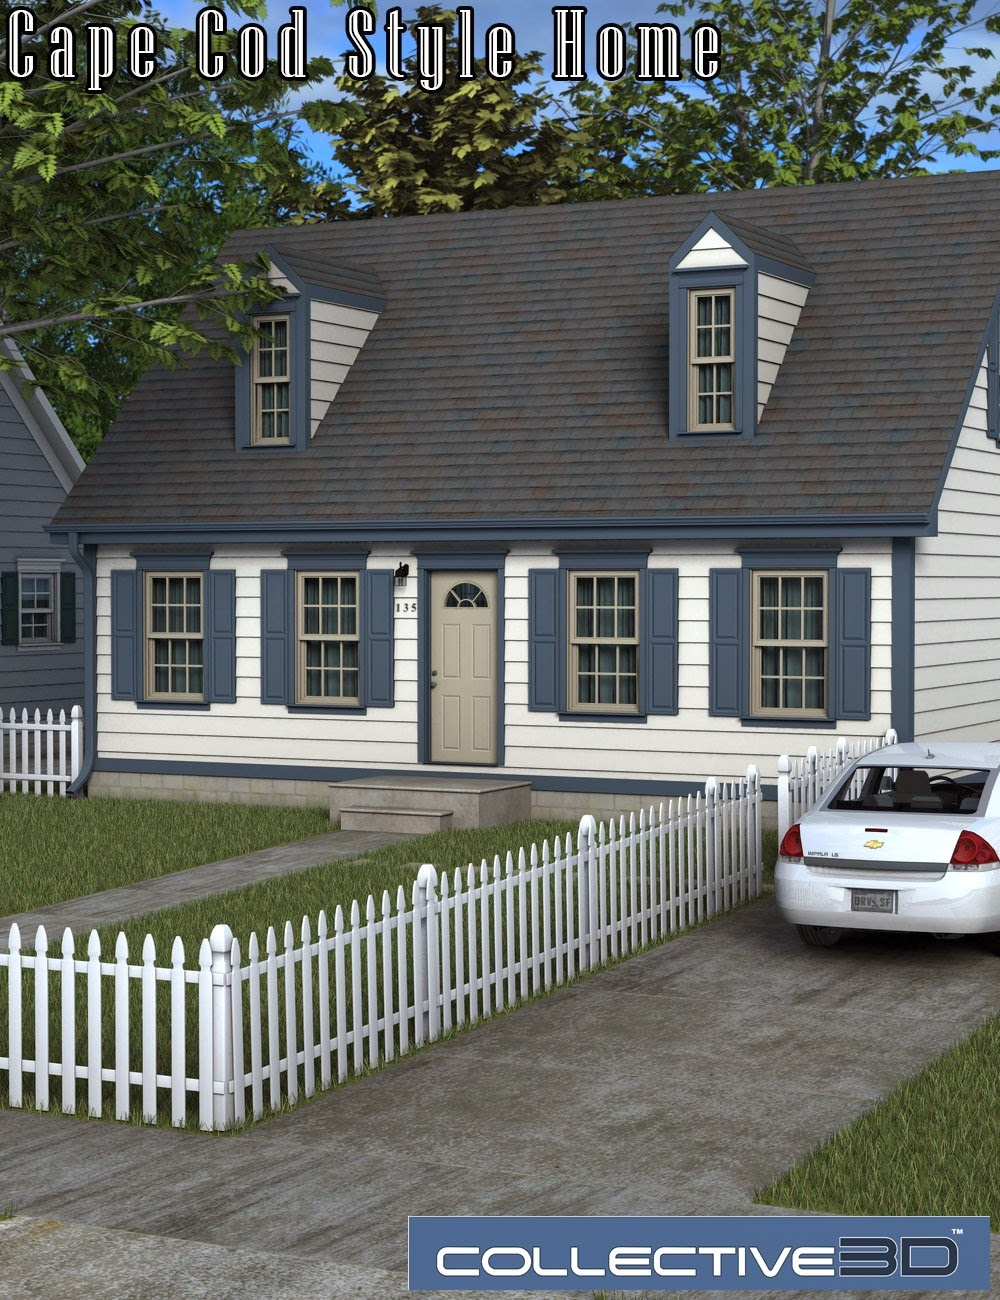 Download daz studio 3 for free daz 3d collective3d for Cape cod house characteristics